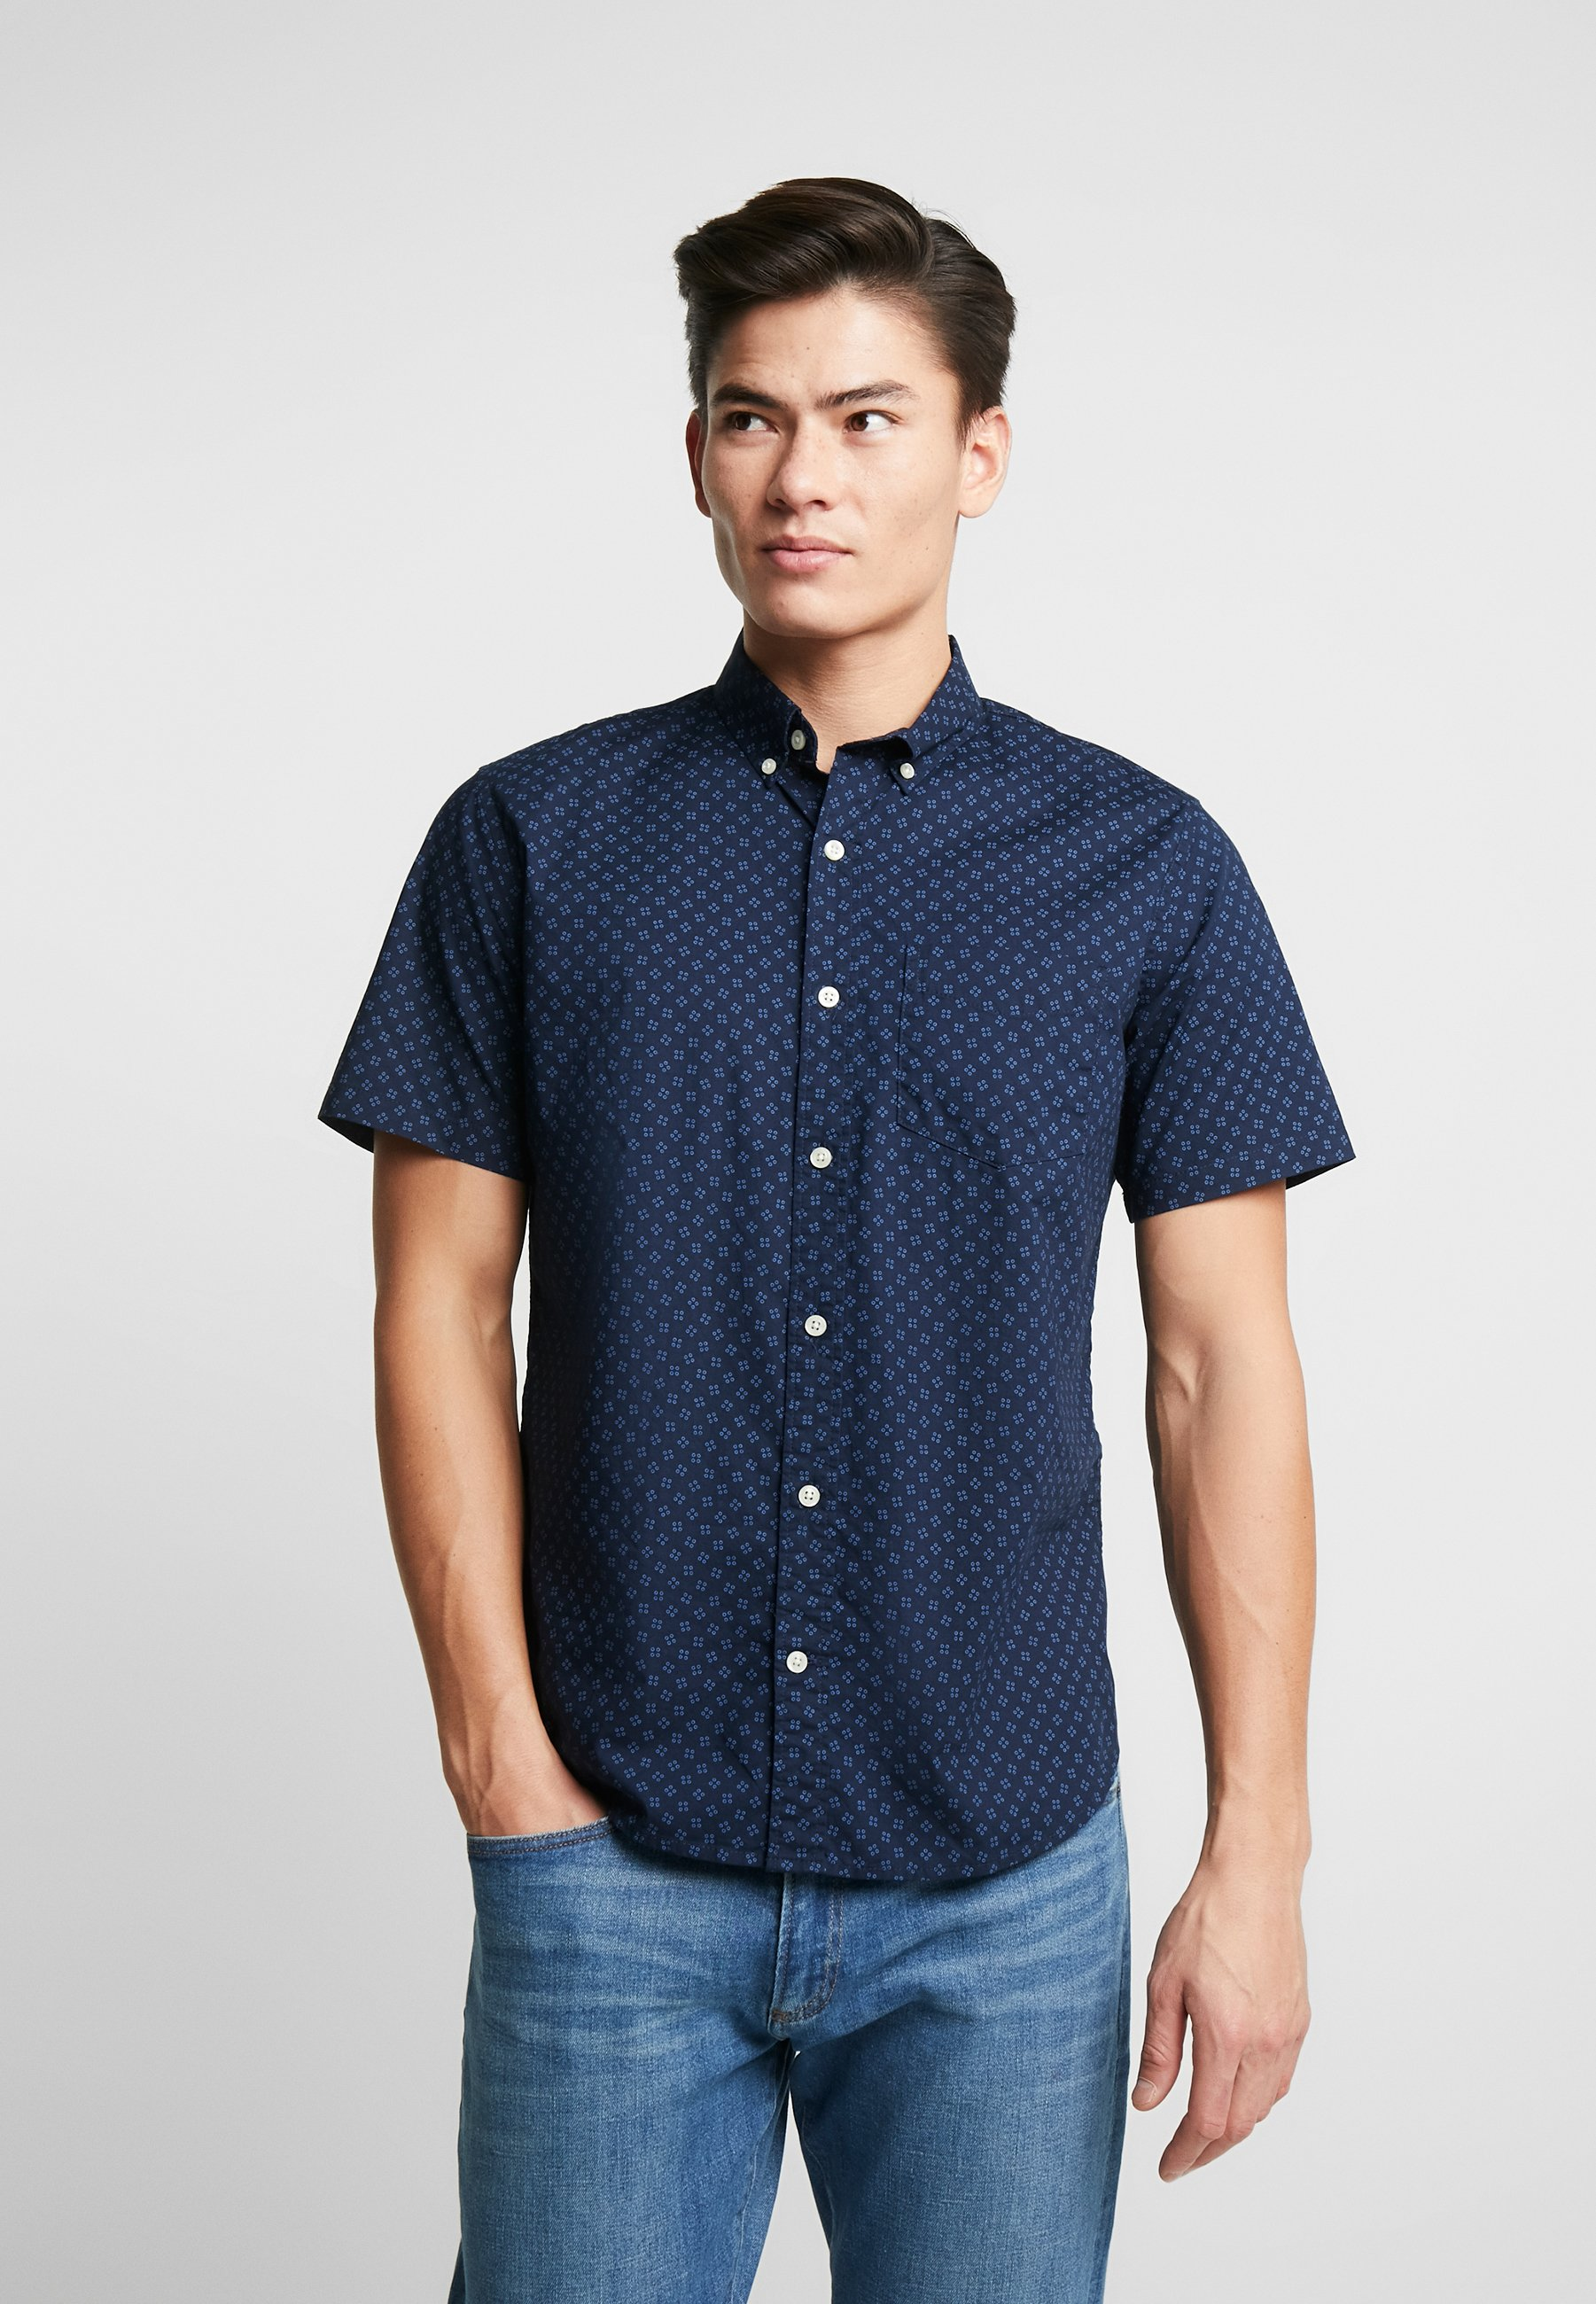 GAP Skjorte - navy